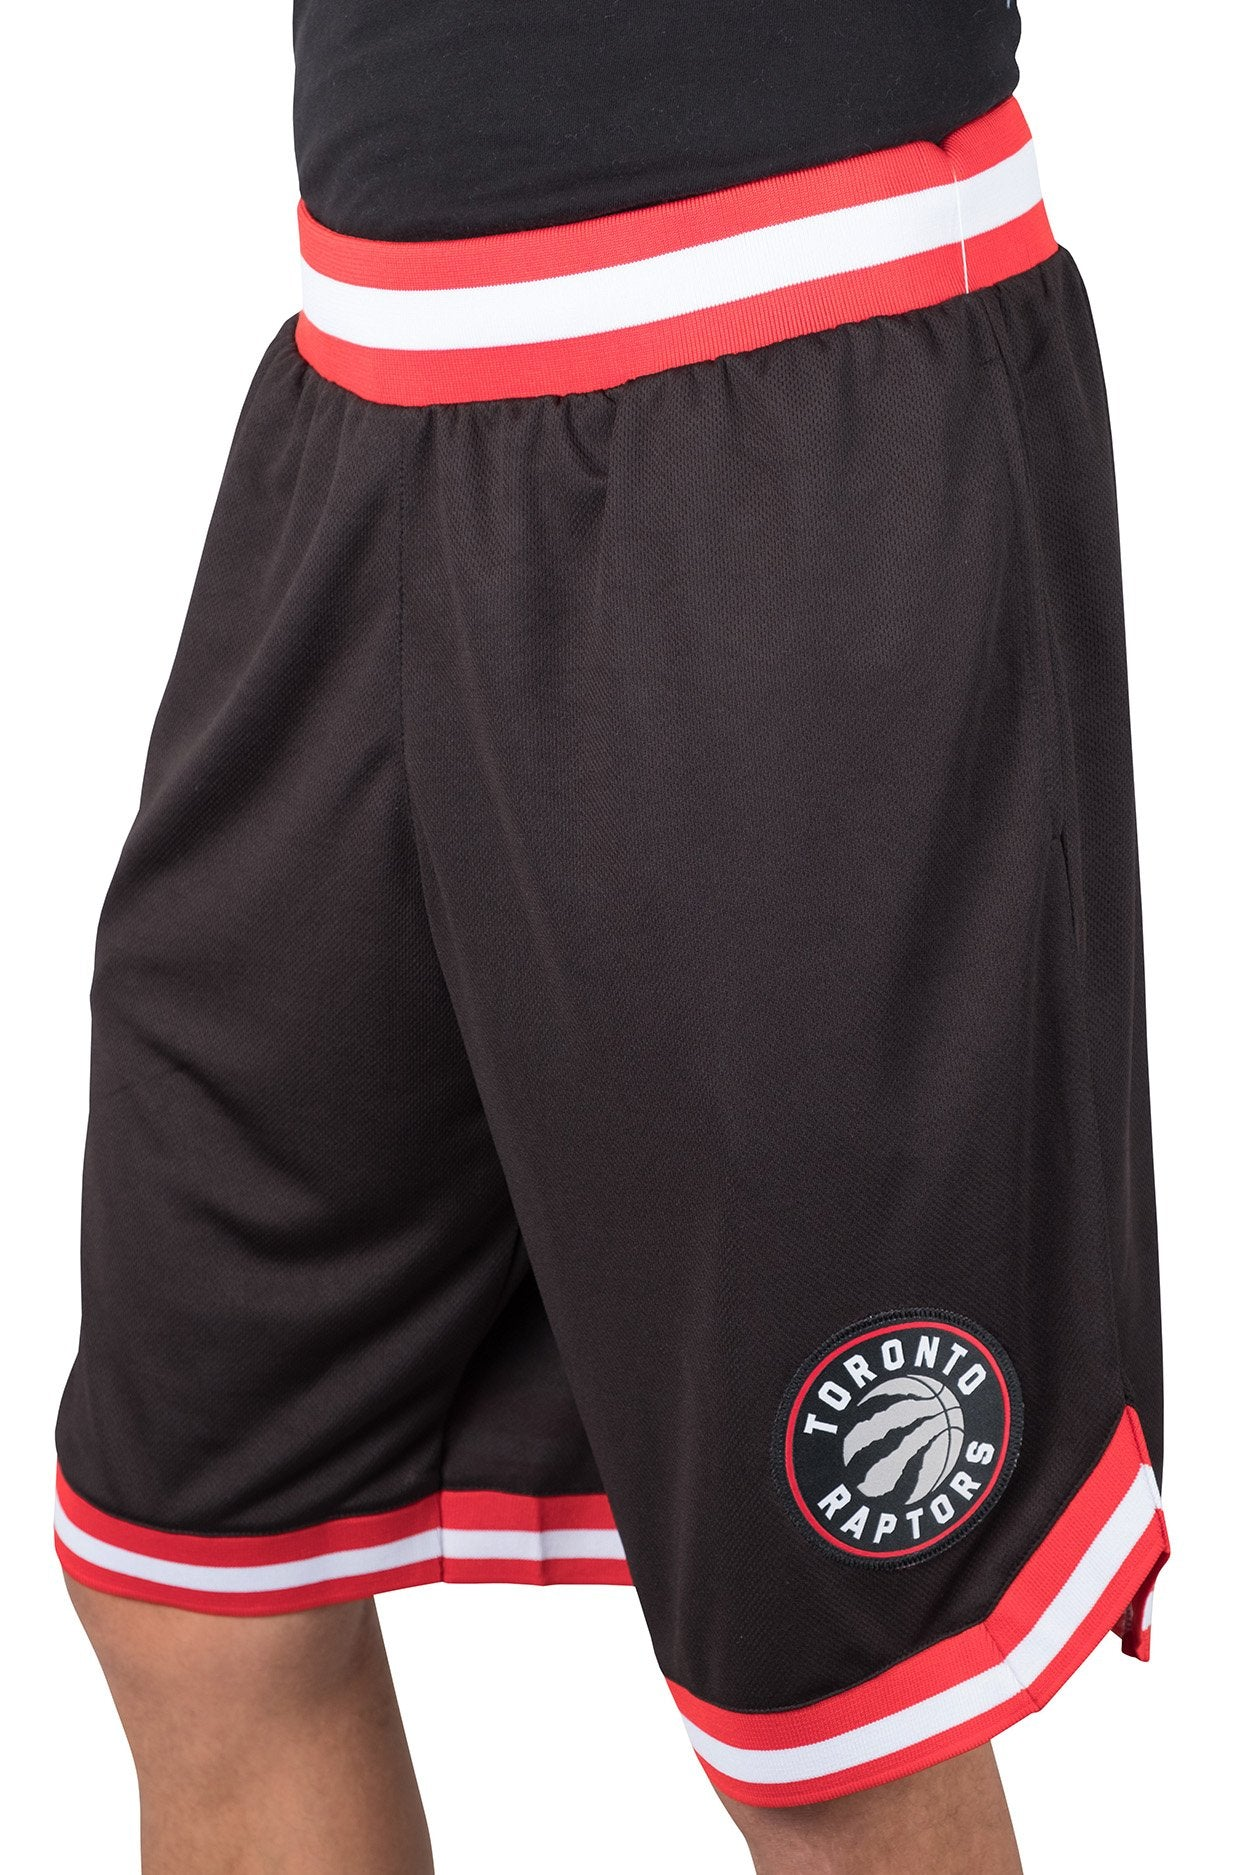 NBA Toronto Raptors Men's Basketball Shorts|Toronto Raptors